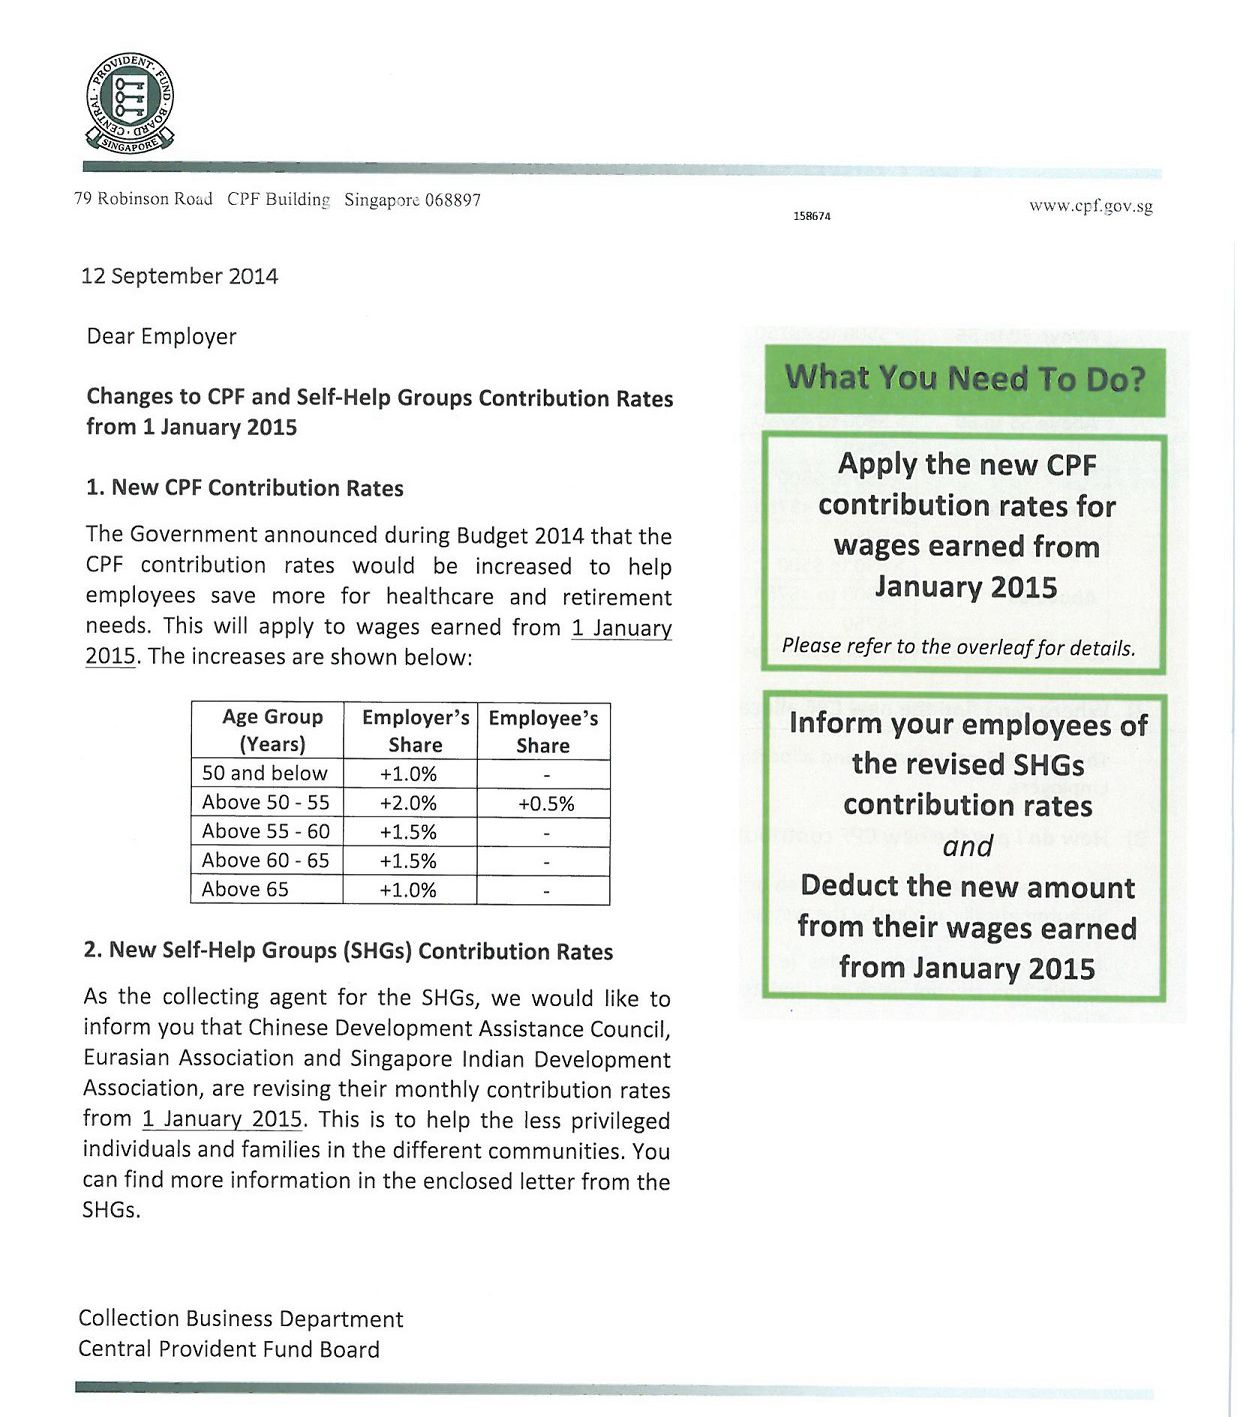 Changes to CPF and Self-Help Groups Contribution Rates from 1 January 2015 page 1